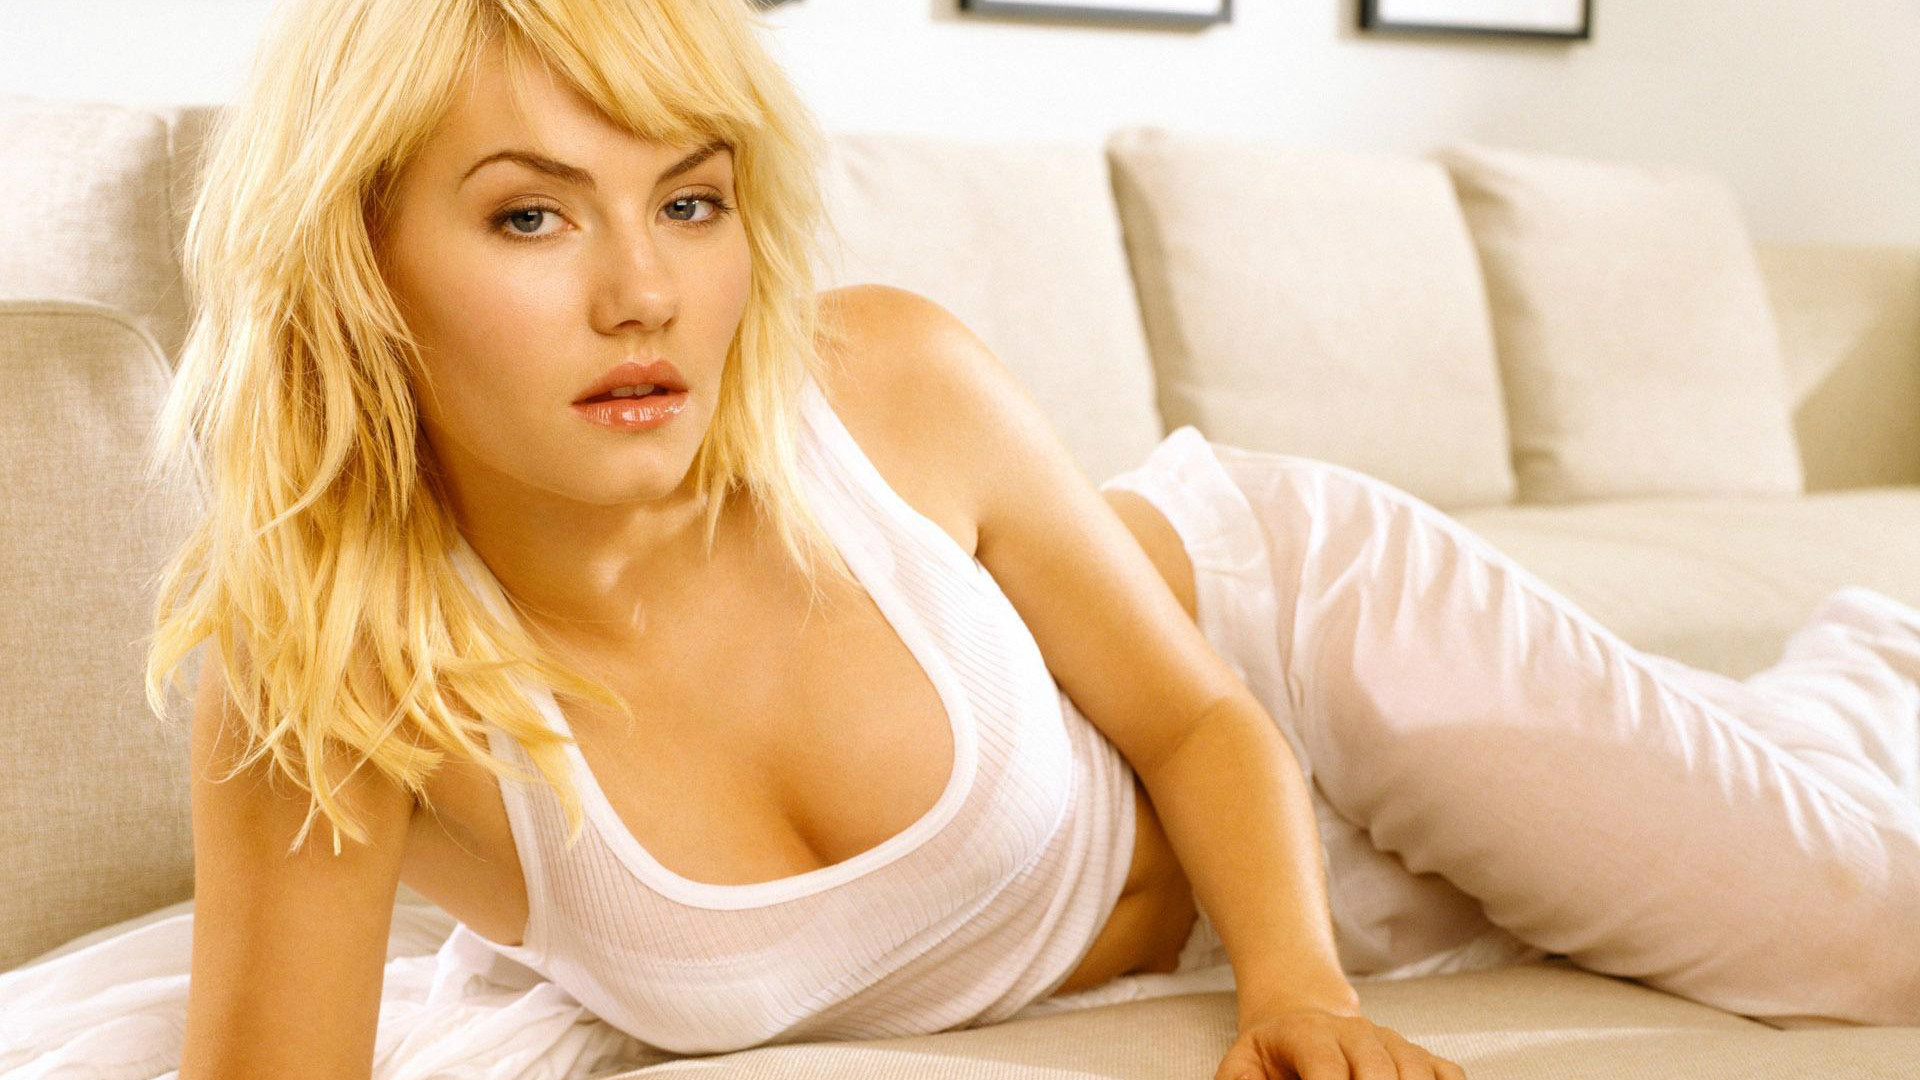 Elisha Cuthbert was best known for 24